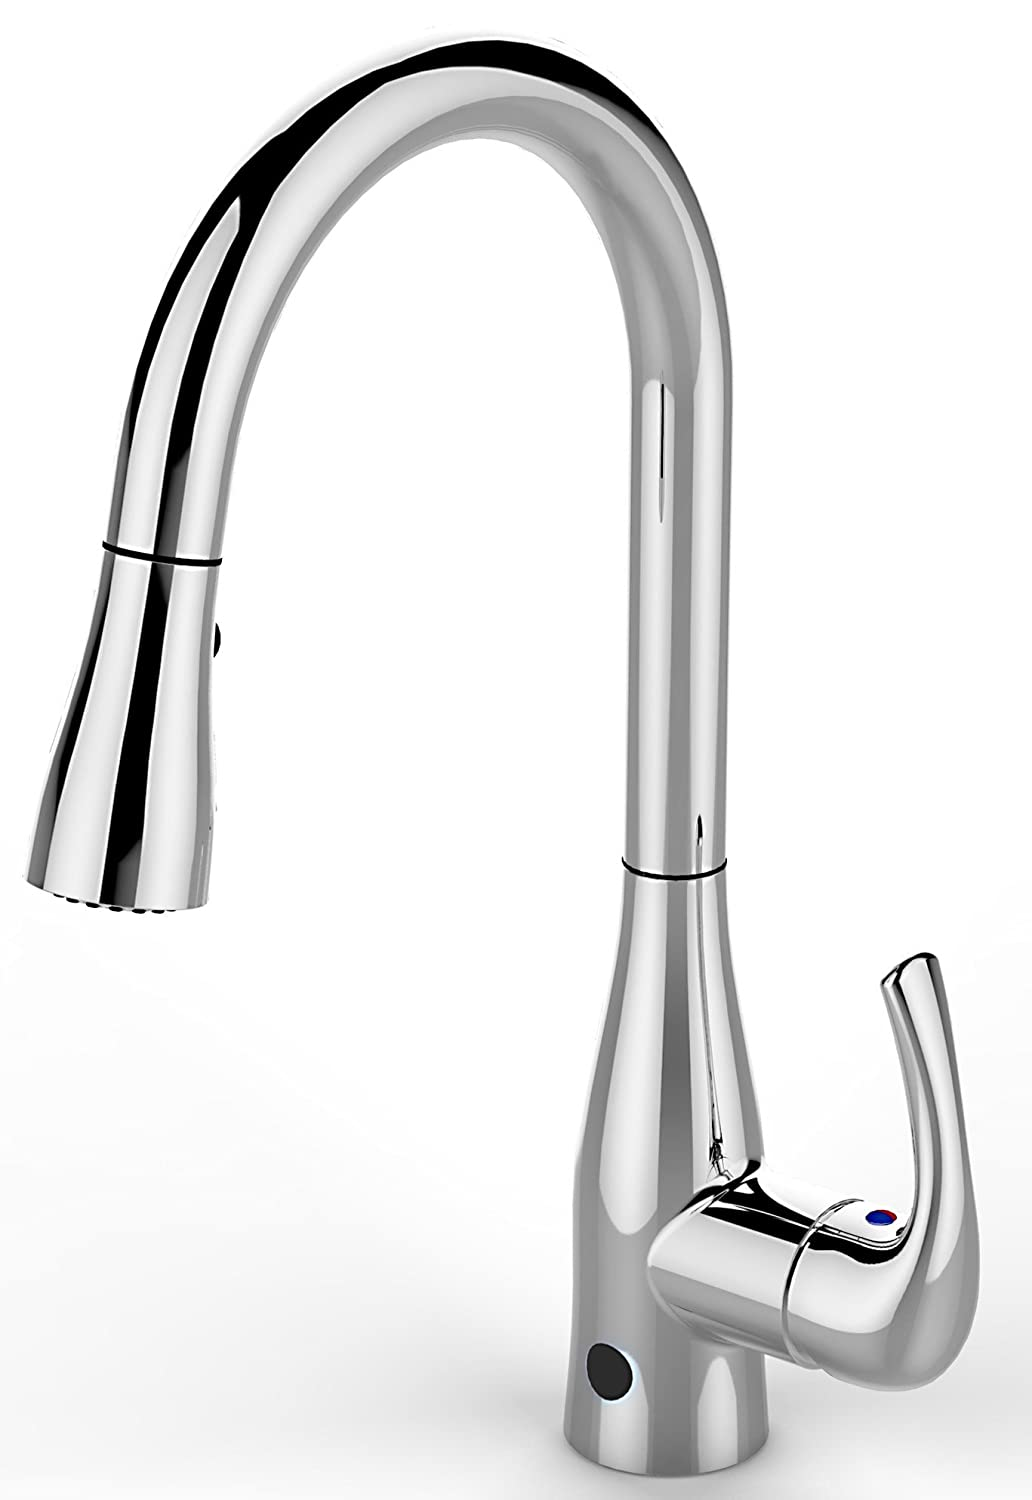 flow faucet from biobidet hands free motion sensing technology flow faucet from biobidet hands free motion sensing technology chrome kitchen faucet dual spray head offers 2 styles of water easy installation no